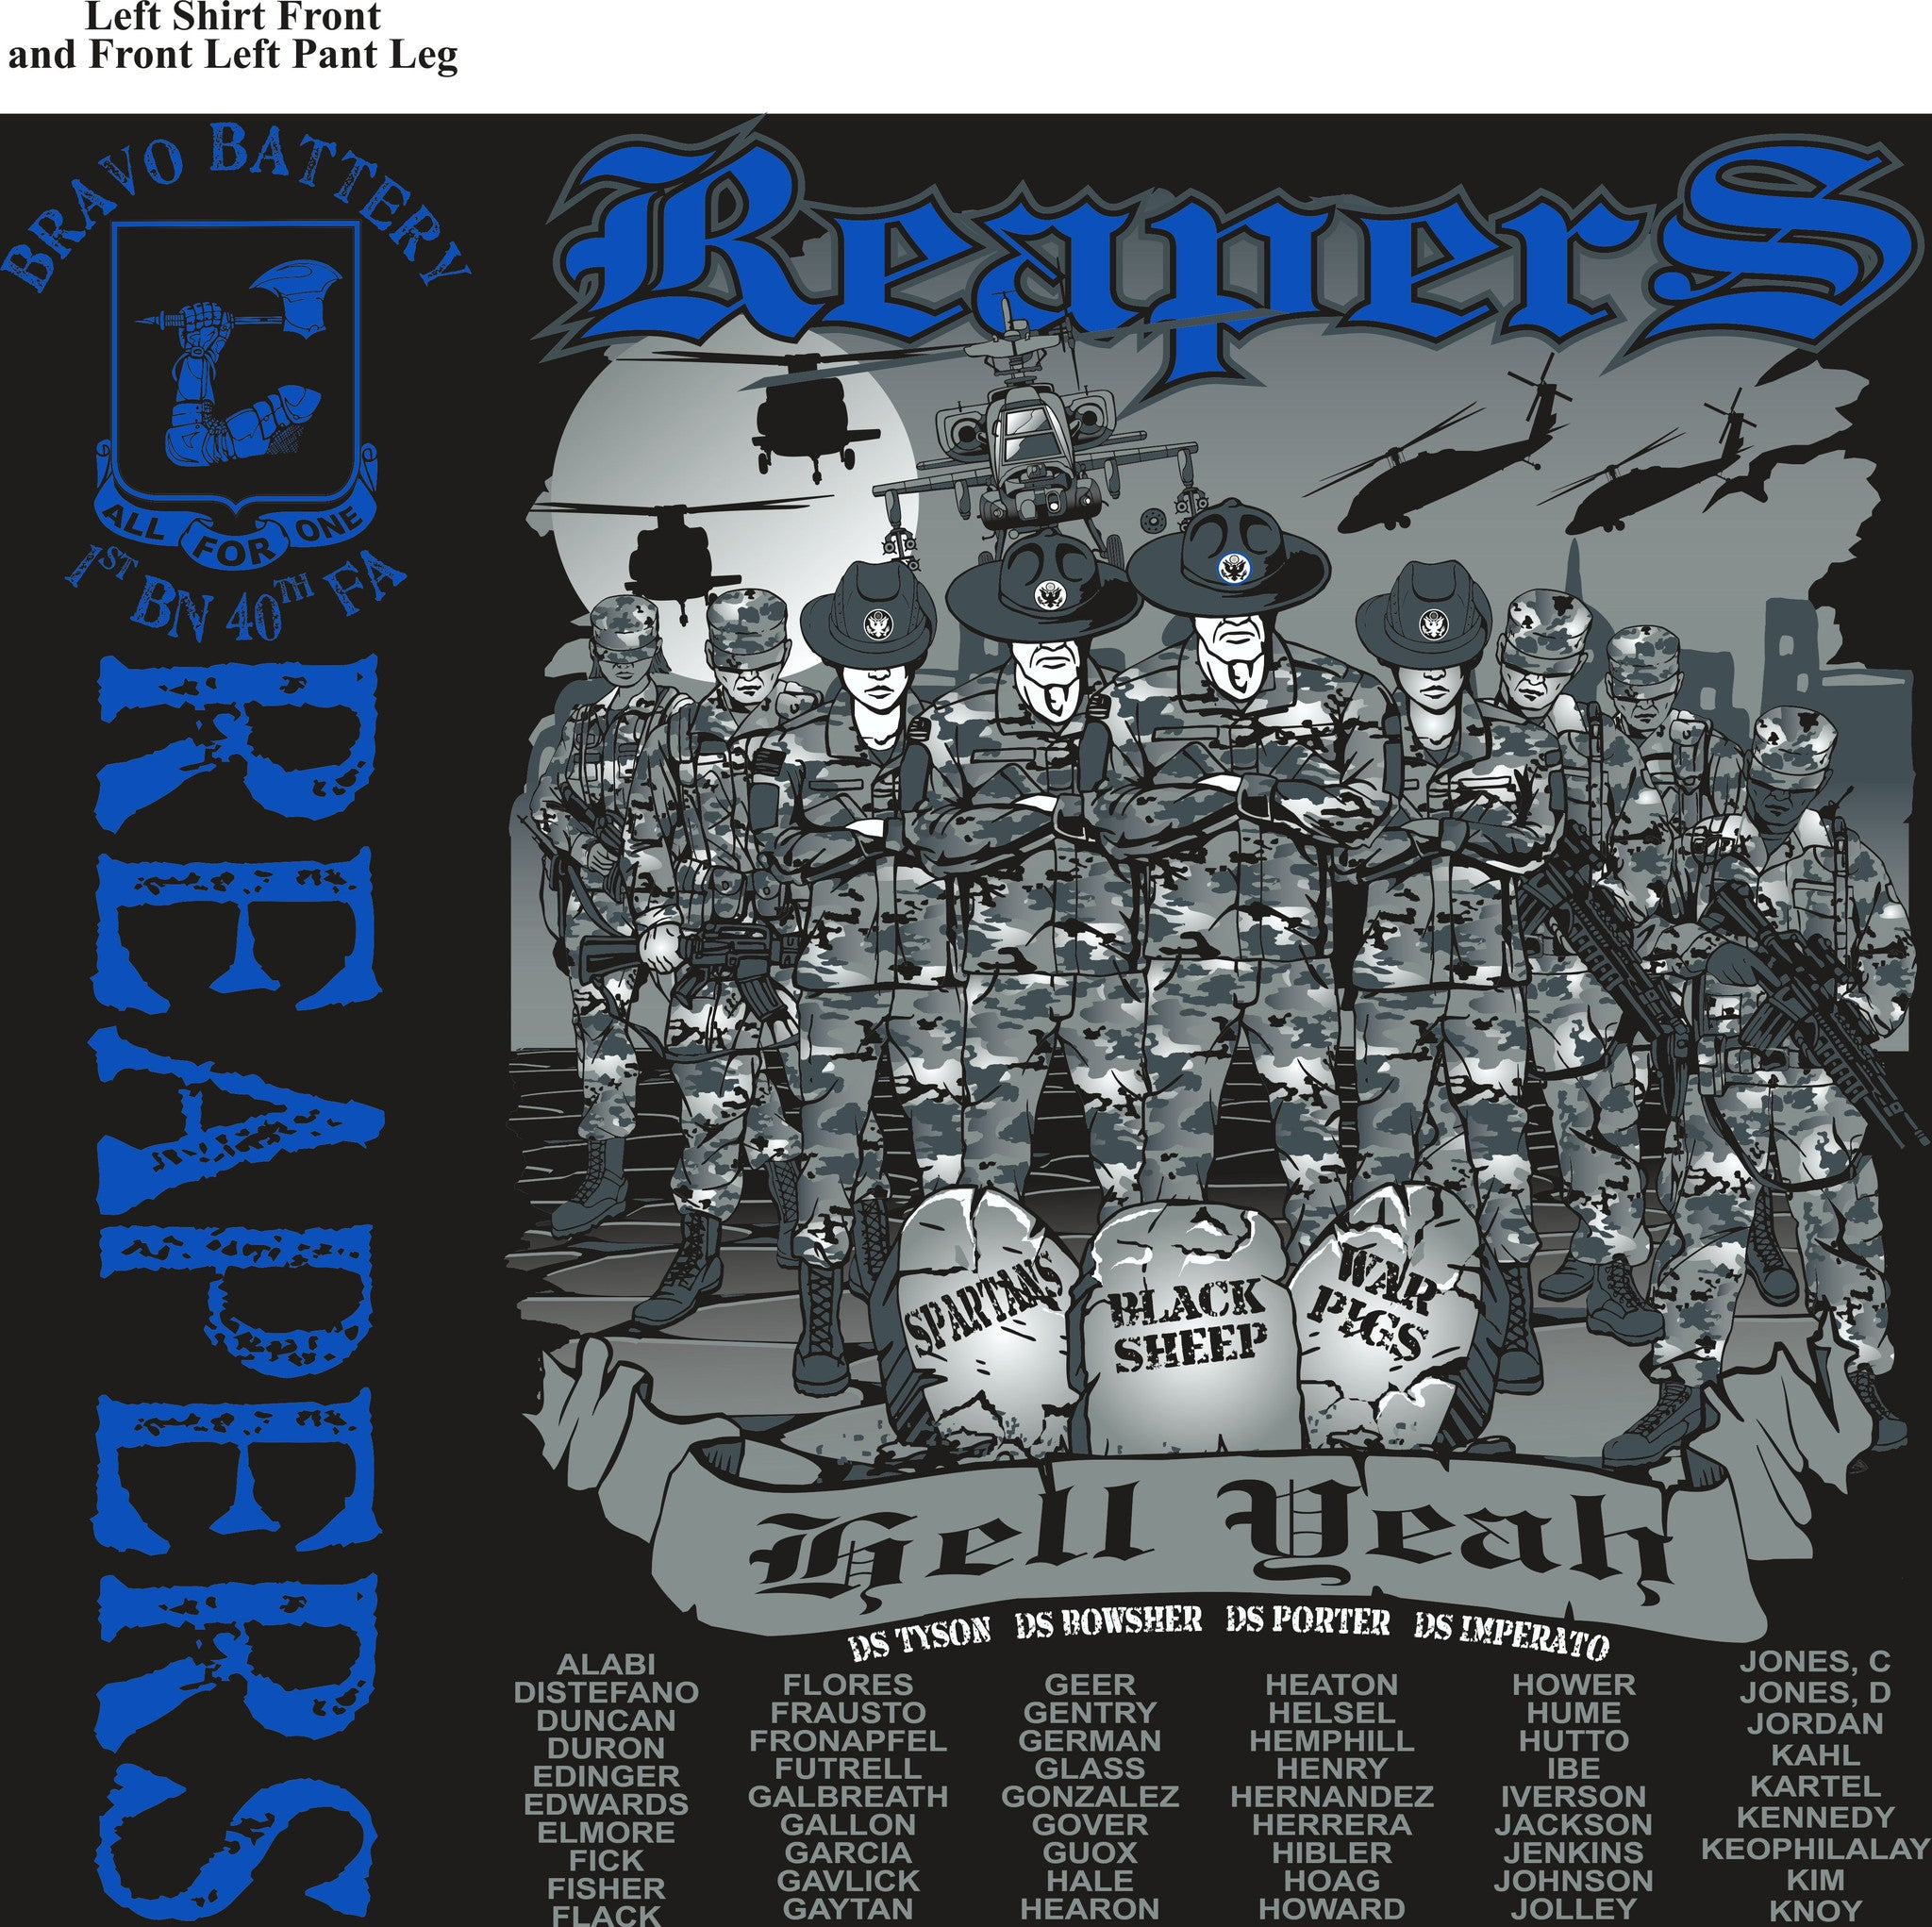 PLATOON SHIRTS (2nd generation print) BRAVO 1st 40th REAPERS OCT 2016